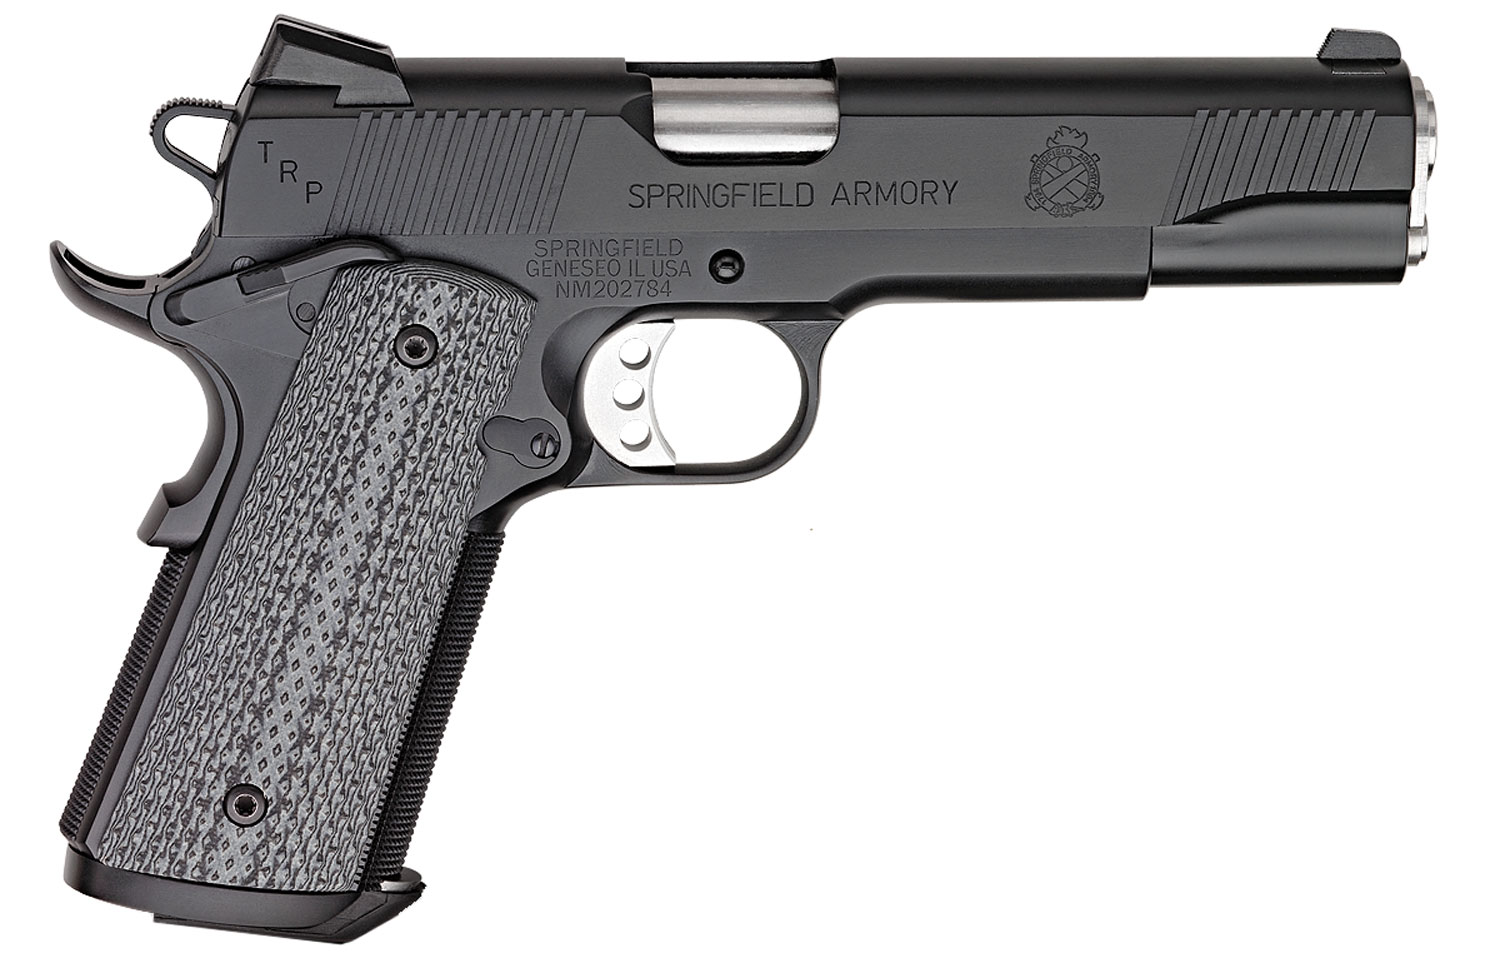 Springfield Armory PC9108LCA 1911 TRP *CA Compliant*  45 Automatic Colt Pistol (ACP) Single 5